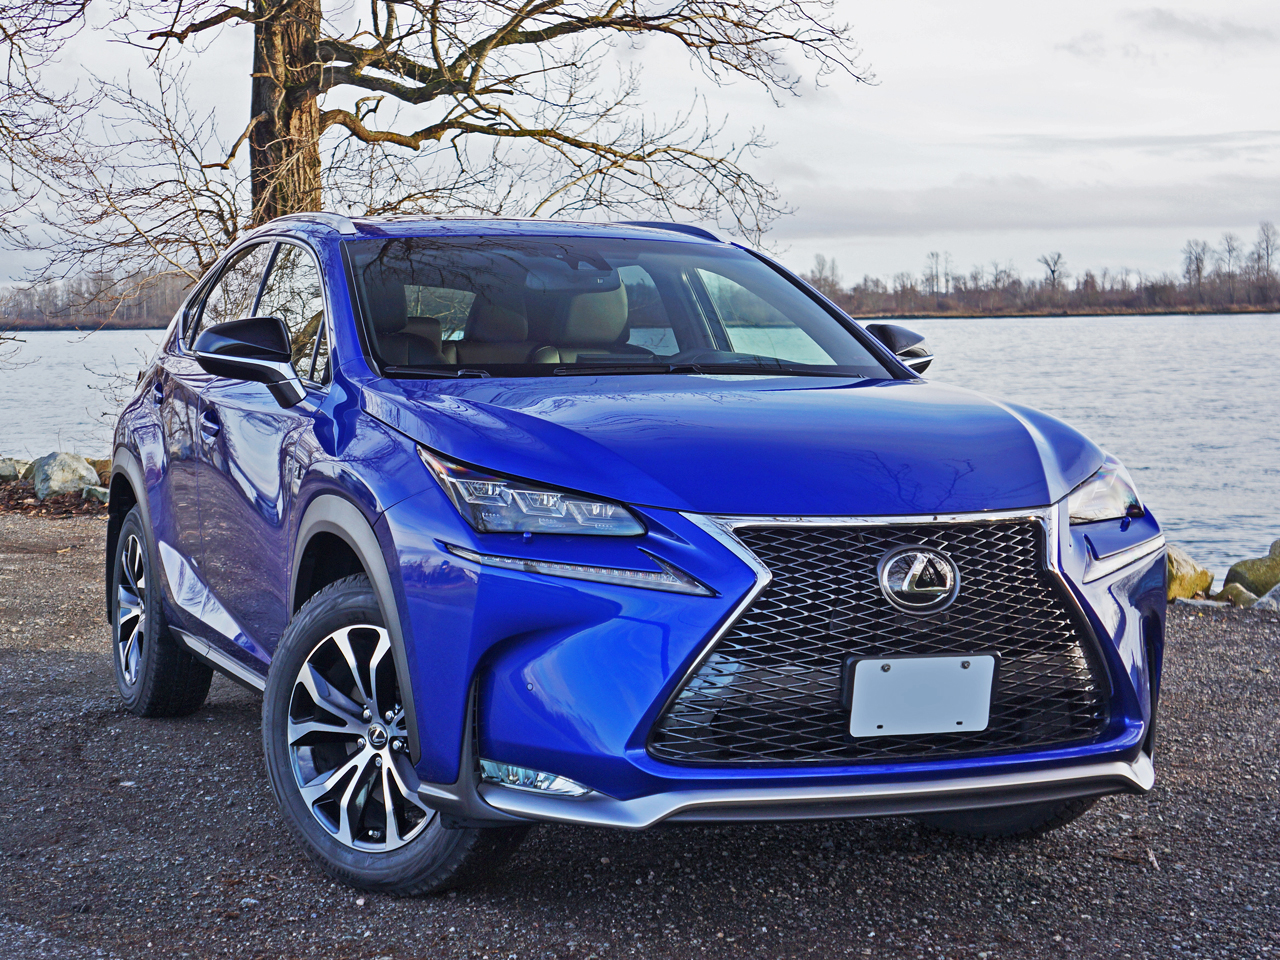 2016 lexus nx 200t f sport awd road test review carcostcanada. Black Bedroom Furniture Sets. Home Design Ideas